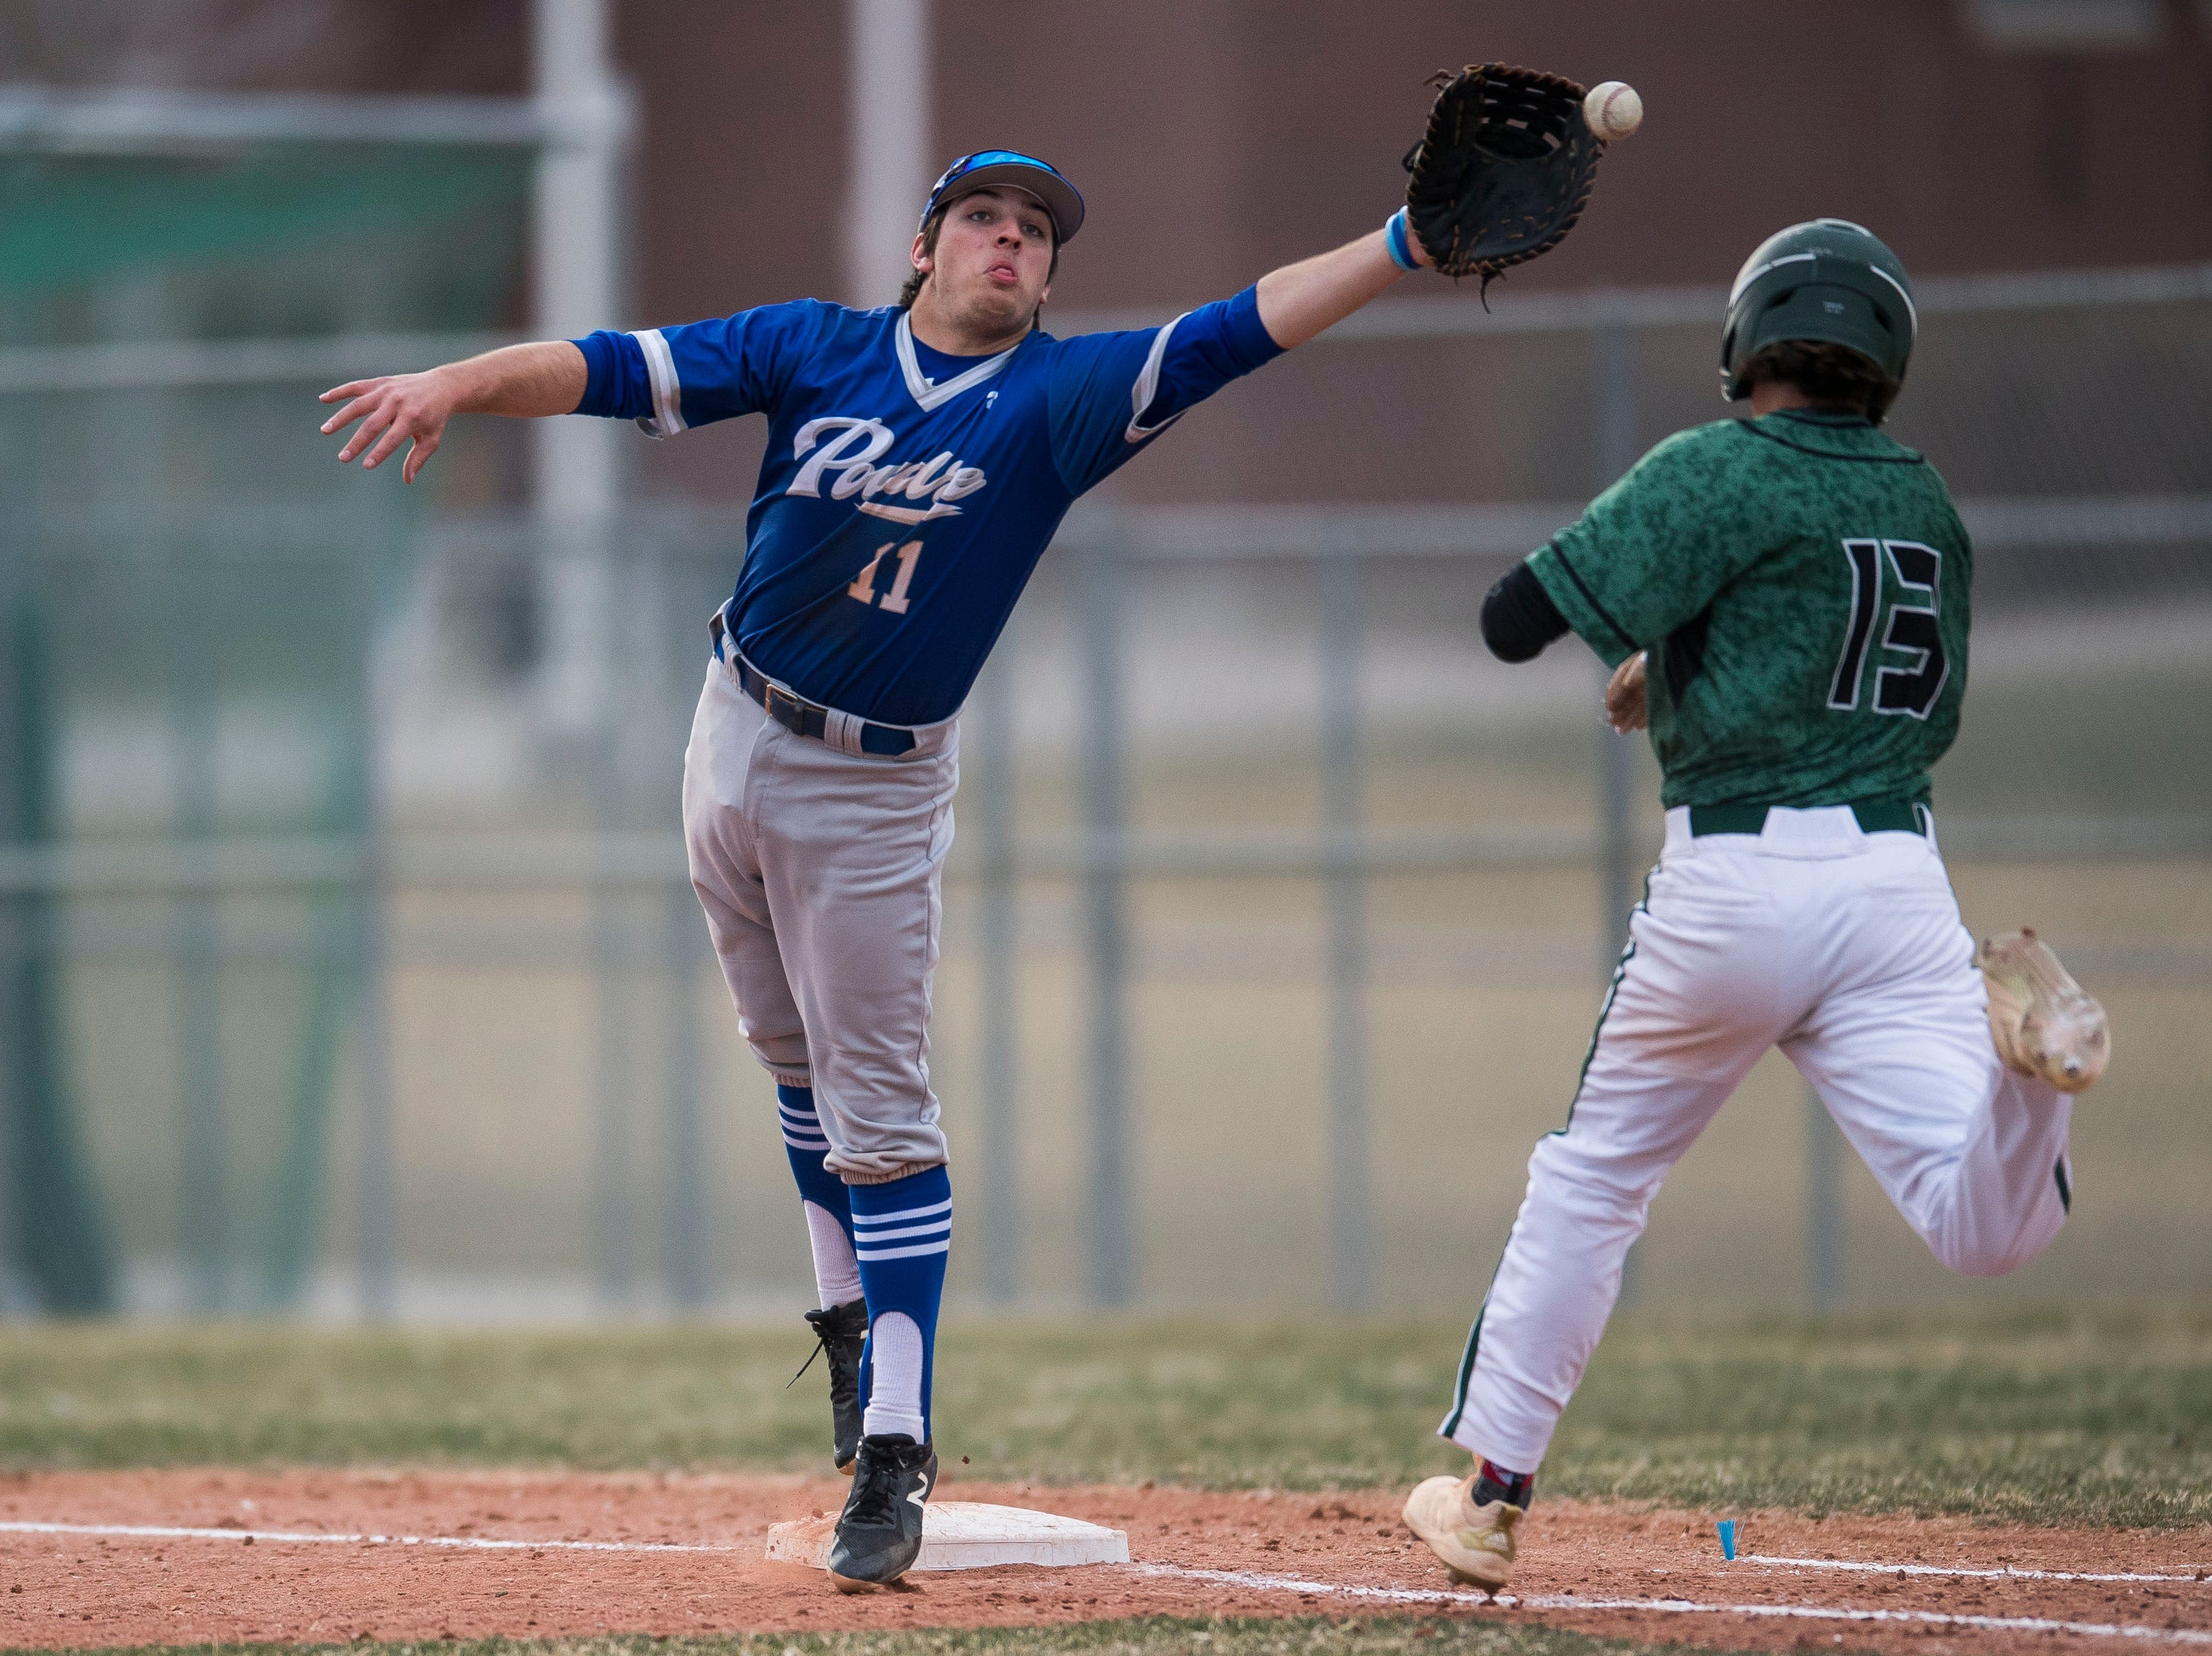 Poudre High School first baseman Jesse Martinez (11) can't reel in the throw from pitcher Sergio Tarango (2) allowing Fossil Ridge High School  runner Jack Cosper (13) to make it to first on Wednesday, April 3, 2019, at Fossil Ridge High School in Fort Collins, Colo.